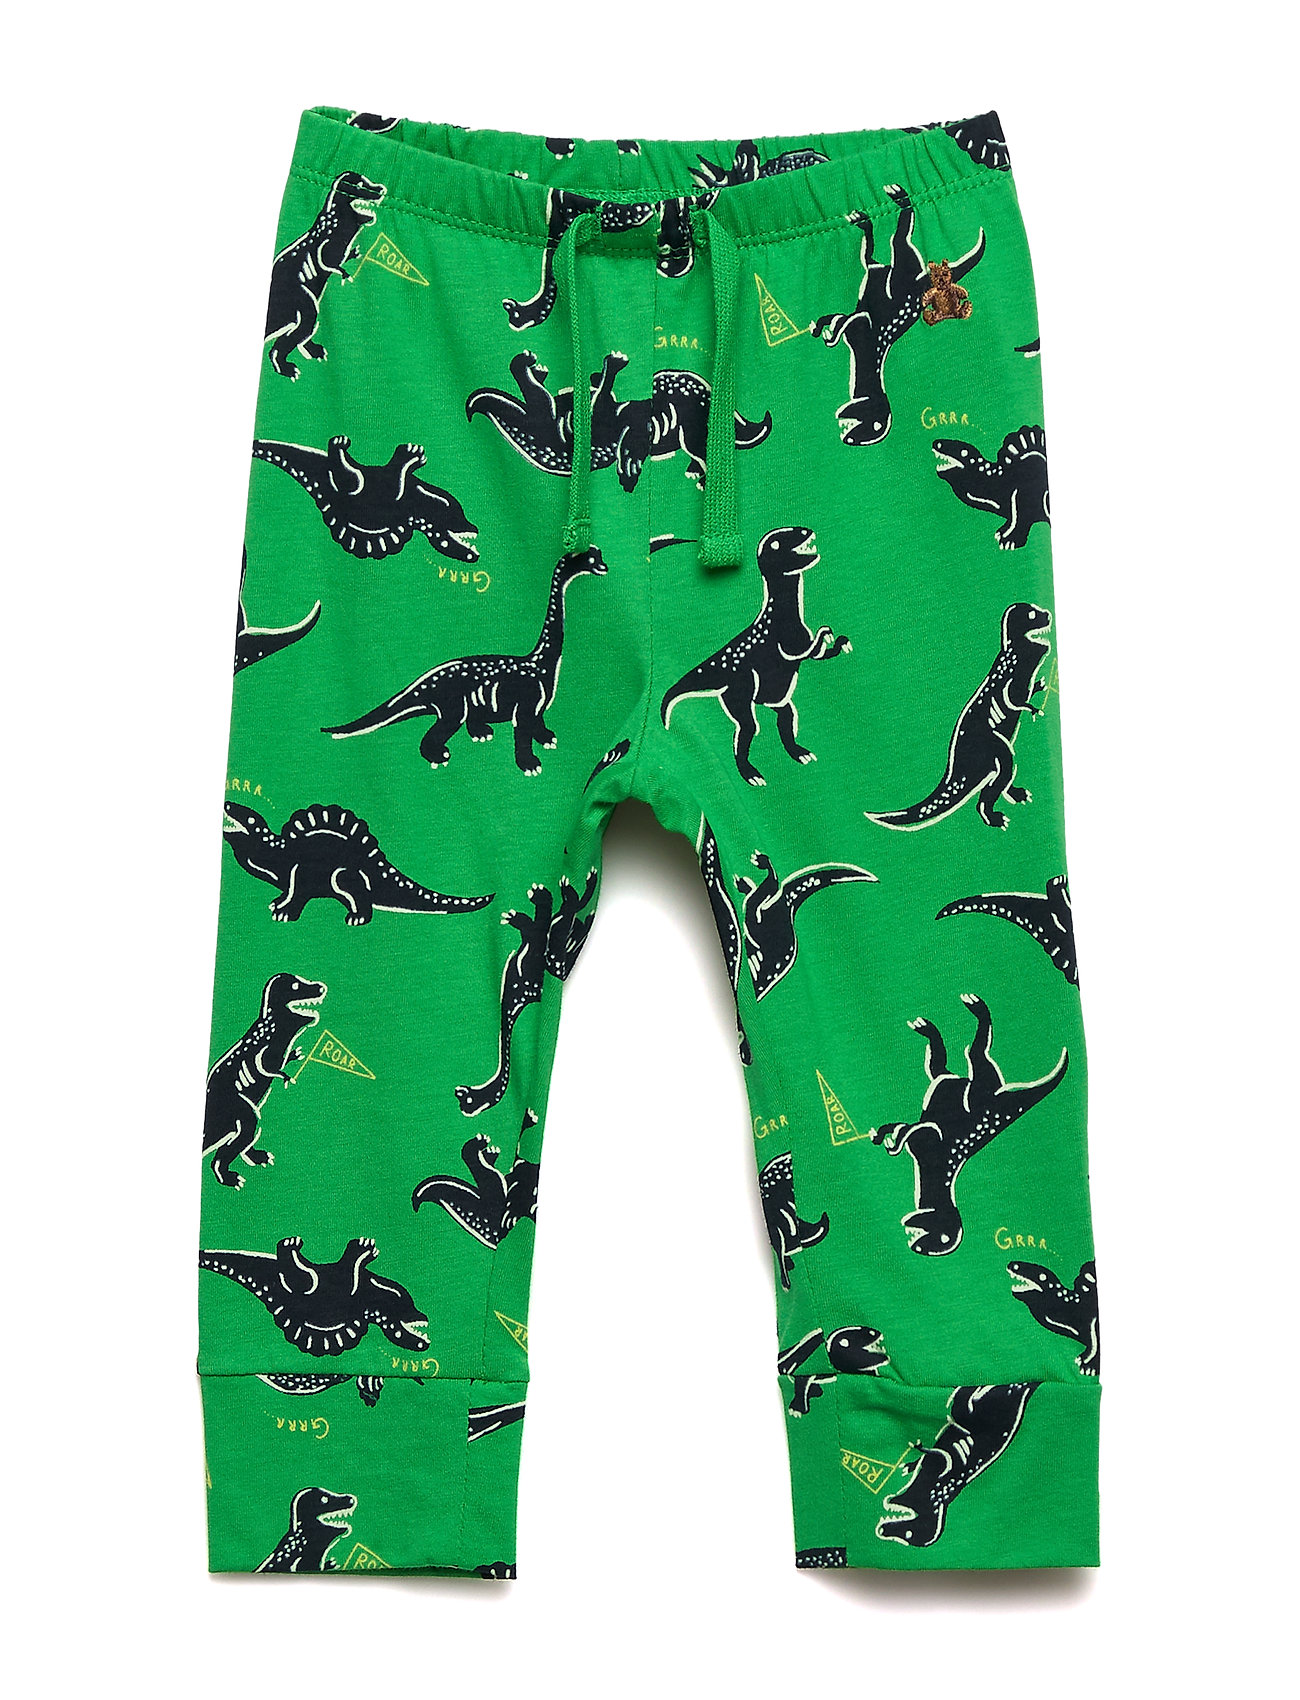 Image of Baby Print Pull-On Pants Bukser Grøn GAP (3230587909)